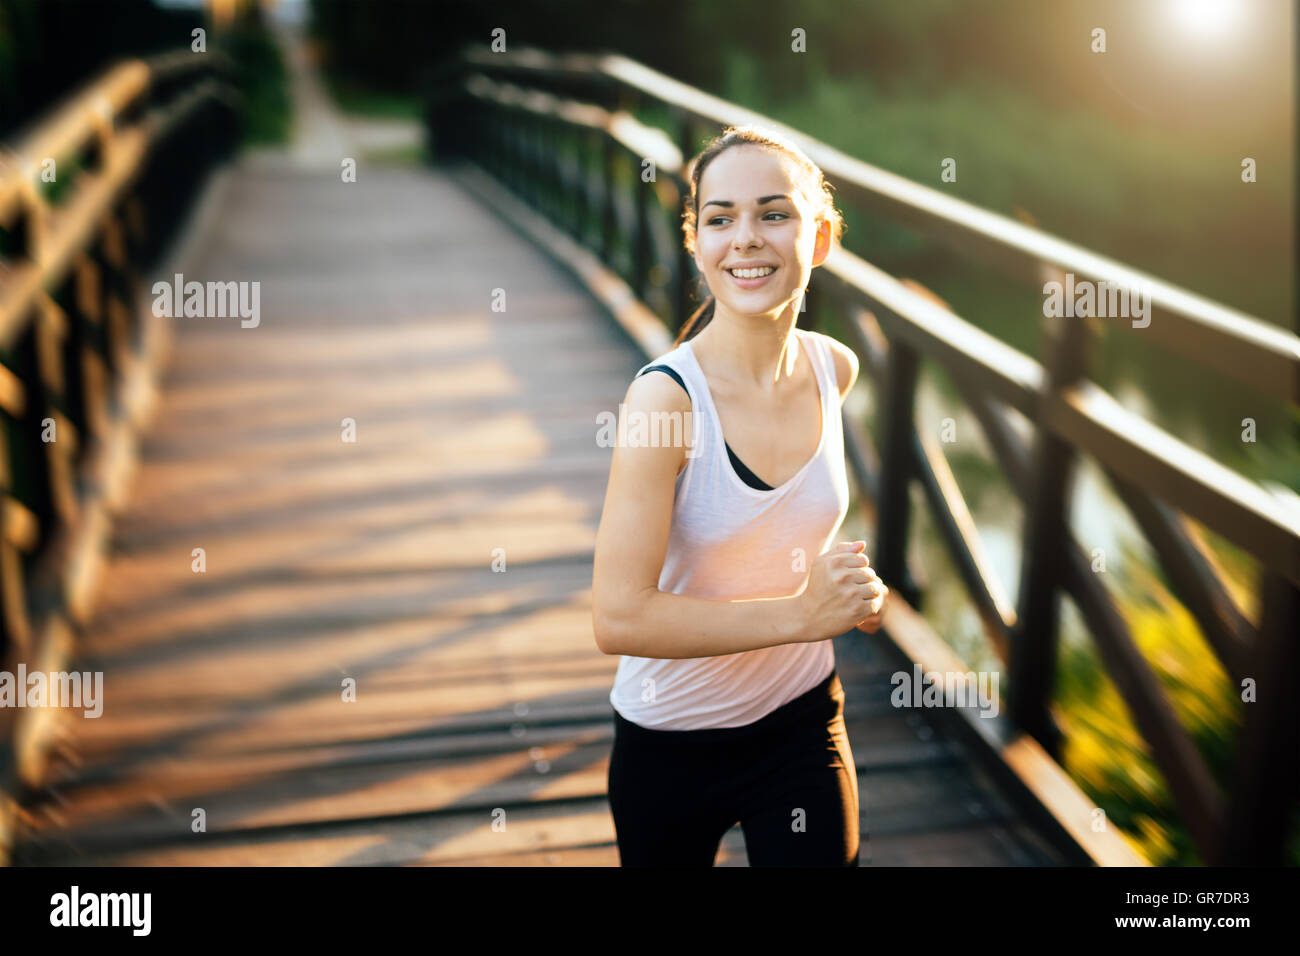 Sporty woman living a healthy life - Stock Image